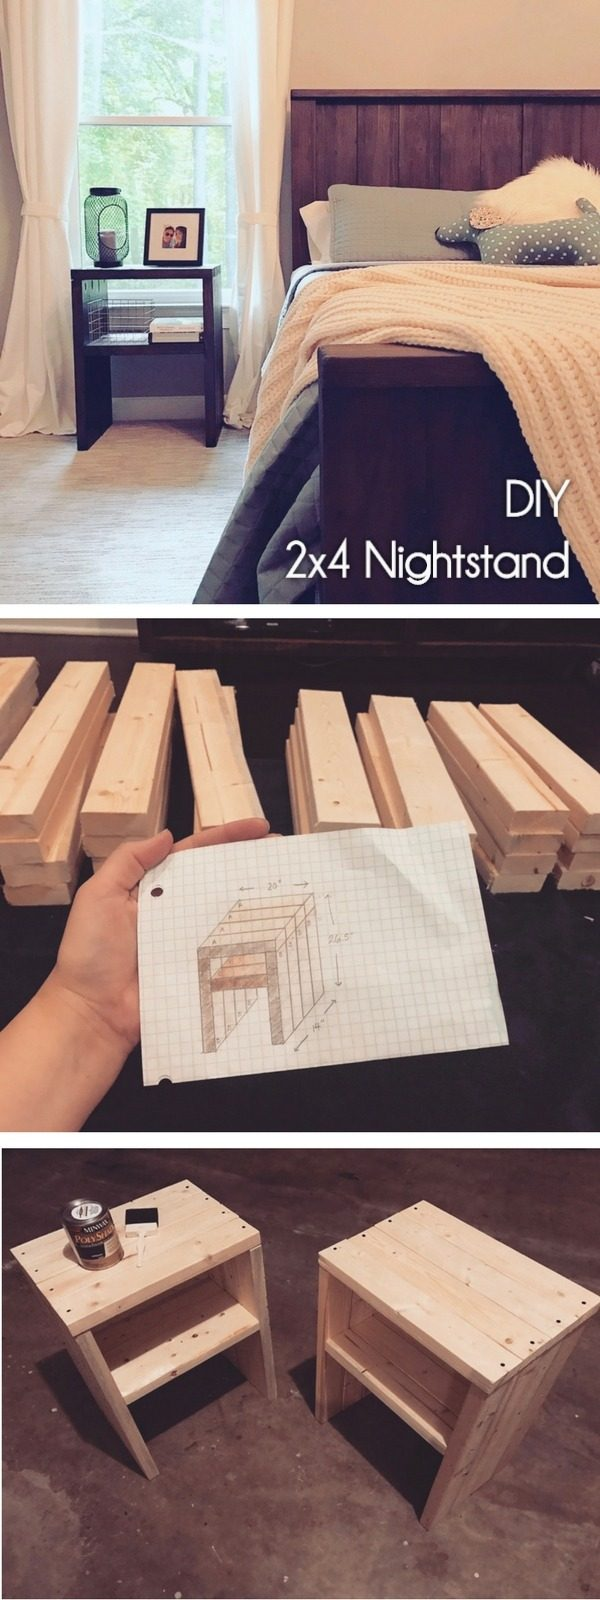 20 Crafty 2x4 DIY Projects That You Can Easily Make - Check out how to make a #DIY #wooden nightstand from 2x4s #HomeDecorIdeas #BedroomDecor